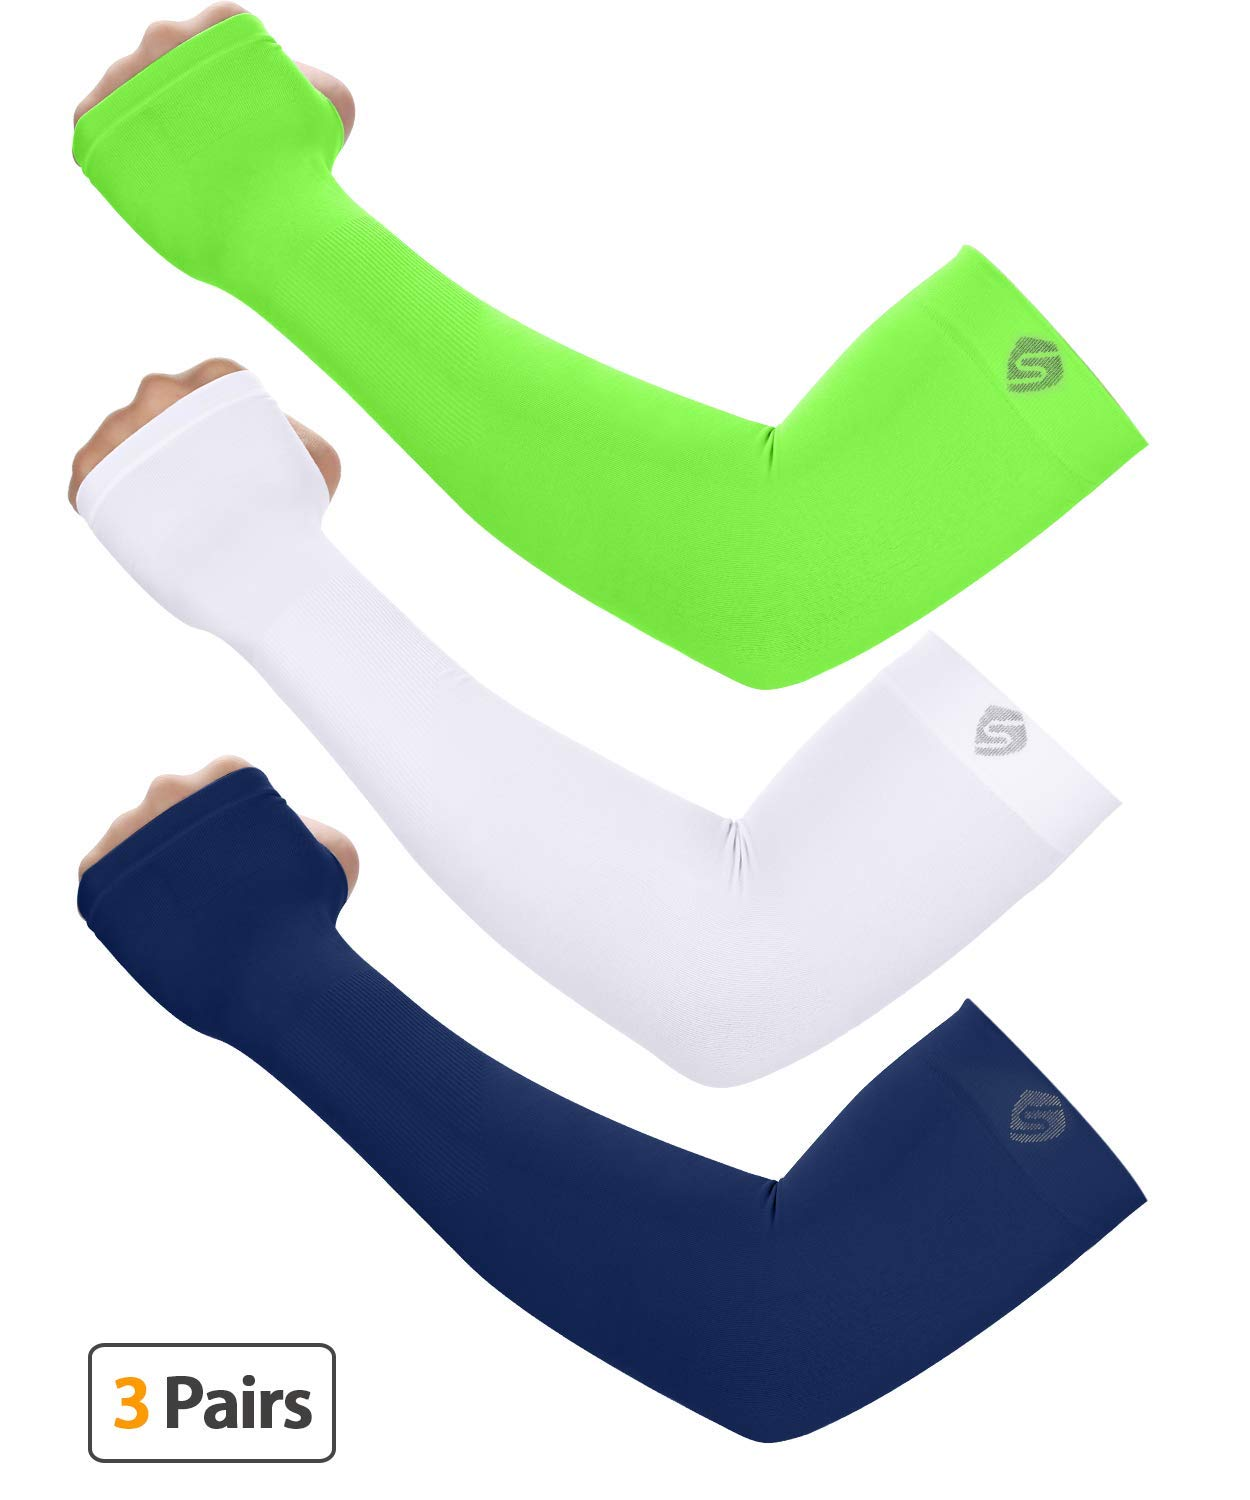 SHINYMOD UV Protection Cooling Arm Sleeves for Men Women Sunblock Cooler Protective Sports Gloves Running Golf Cycling Basketball Driving Fishing Long Arm Cover Sleeves (Navy+Neon Green+White)